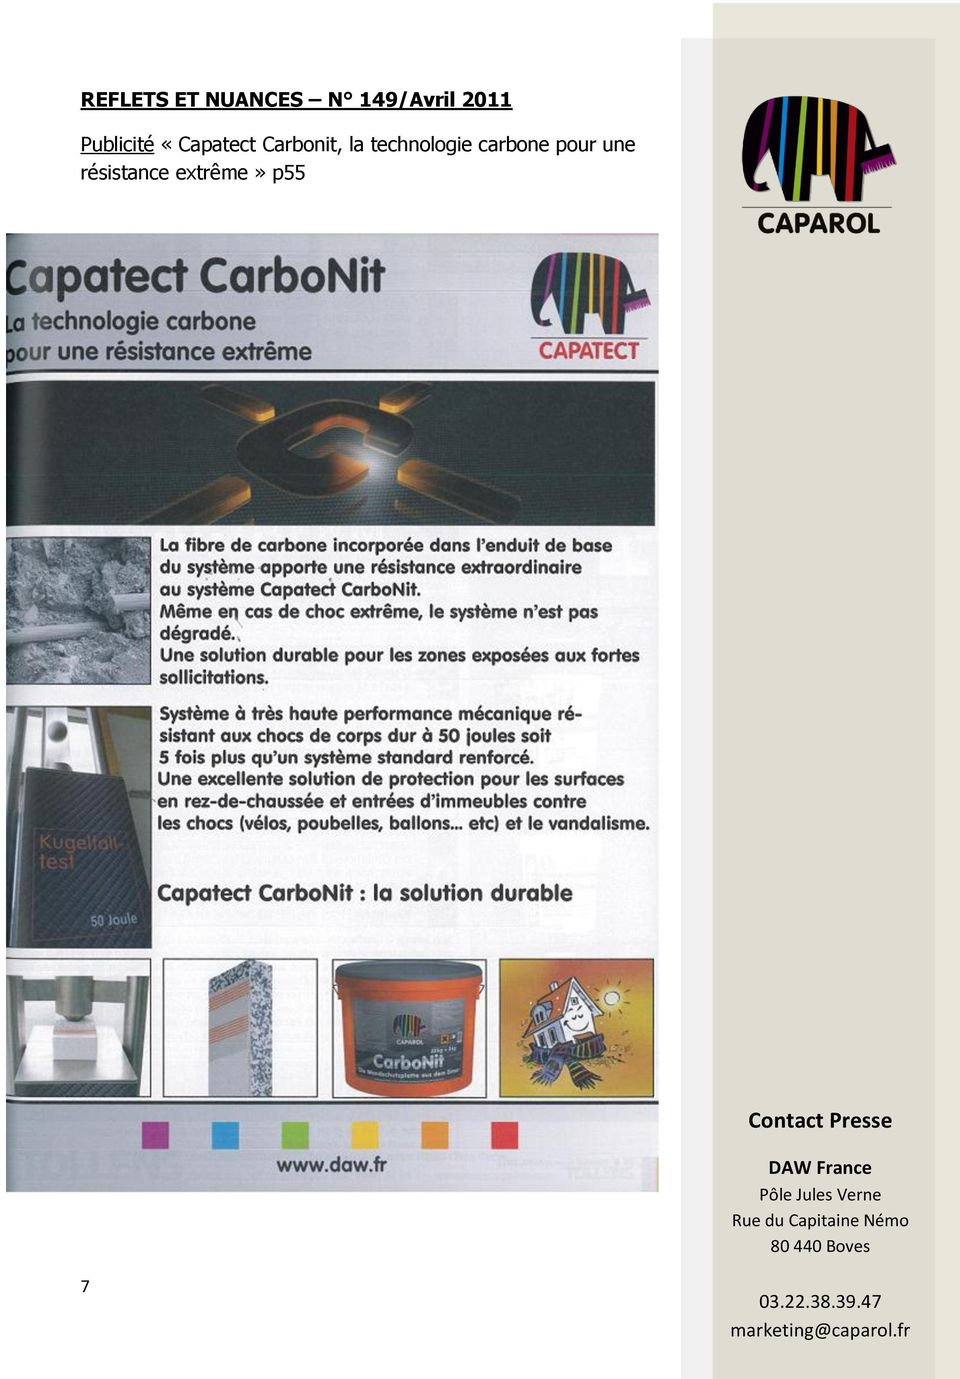 Carbonit, la technologie